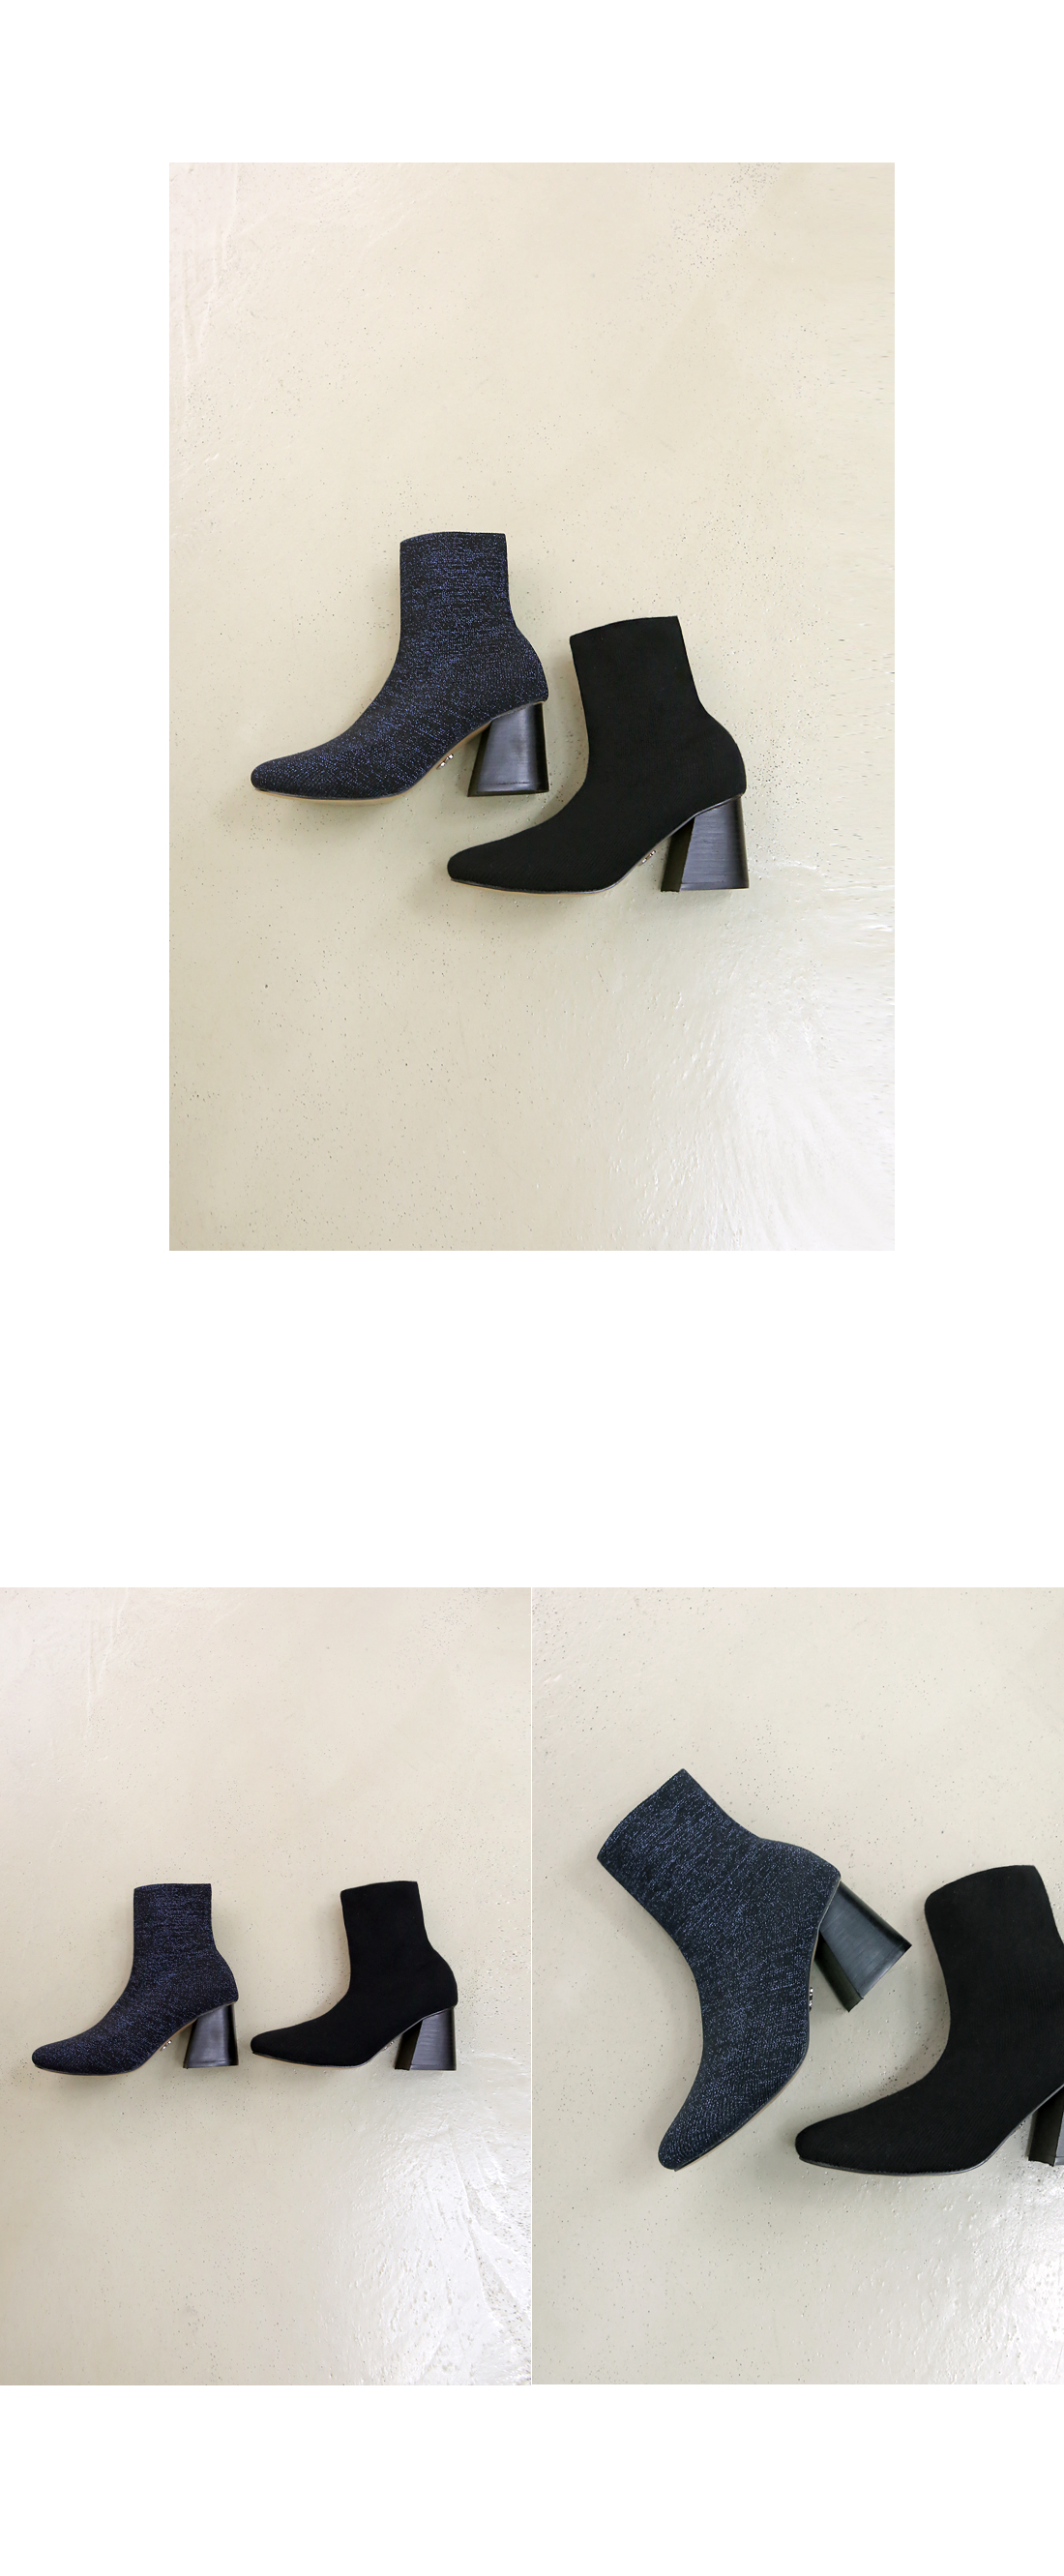 SOCKS ANKLE BOOTS 촬영용